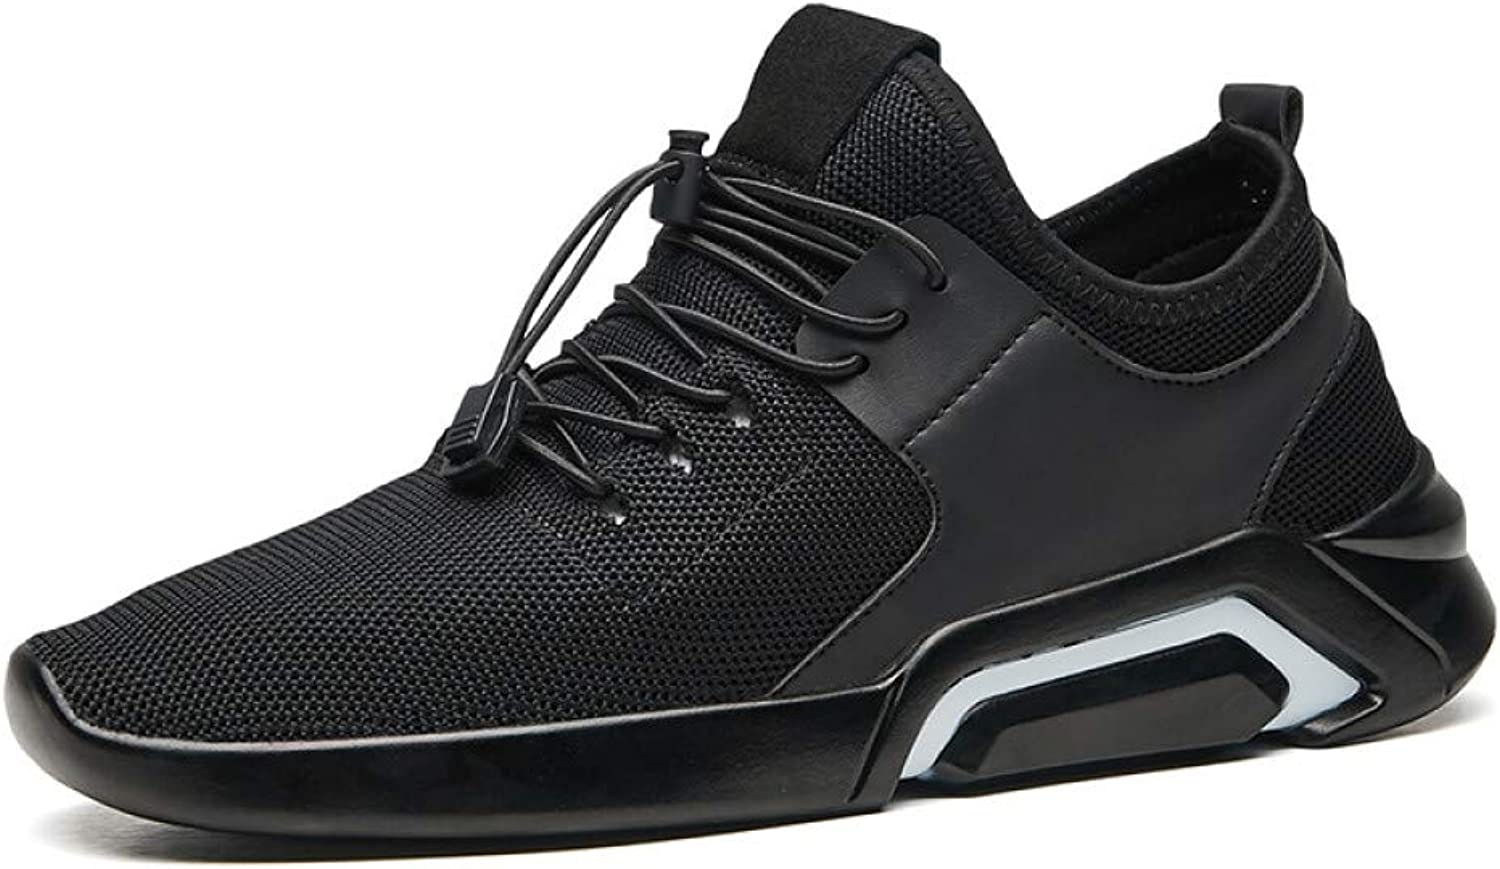 WDDGPZYDX Trend Men Fashion Breathable Adult Casual shoes Comfortable Wear-resisting Lace Up shoes pour sneakers